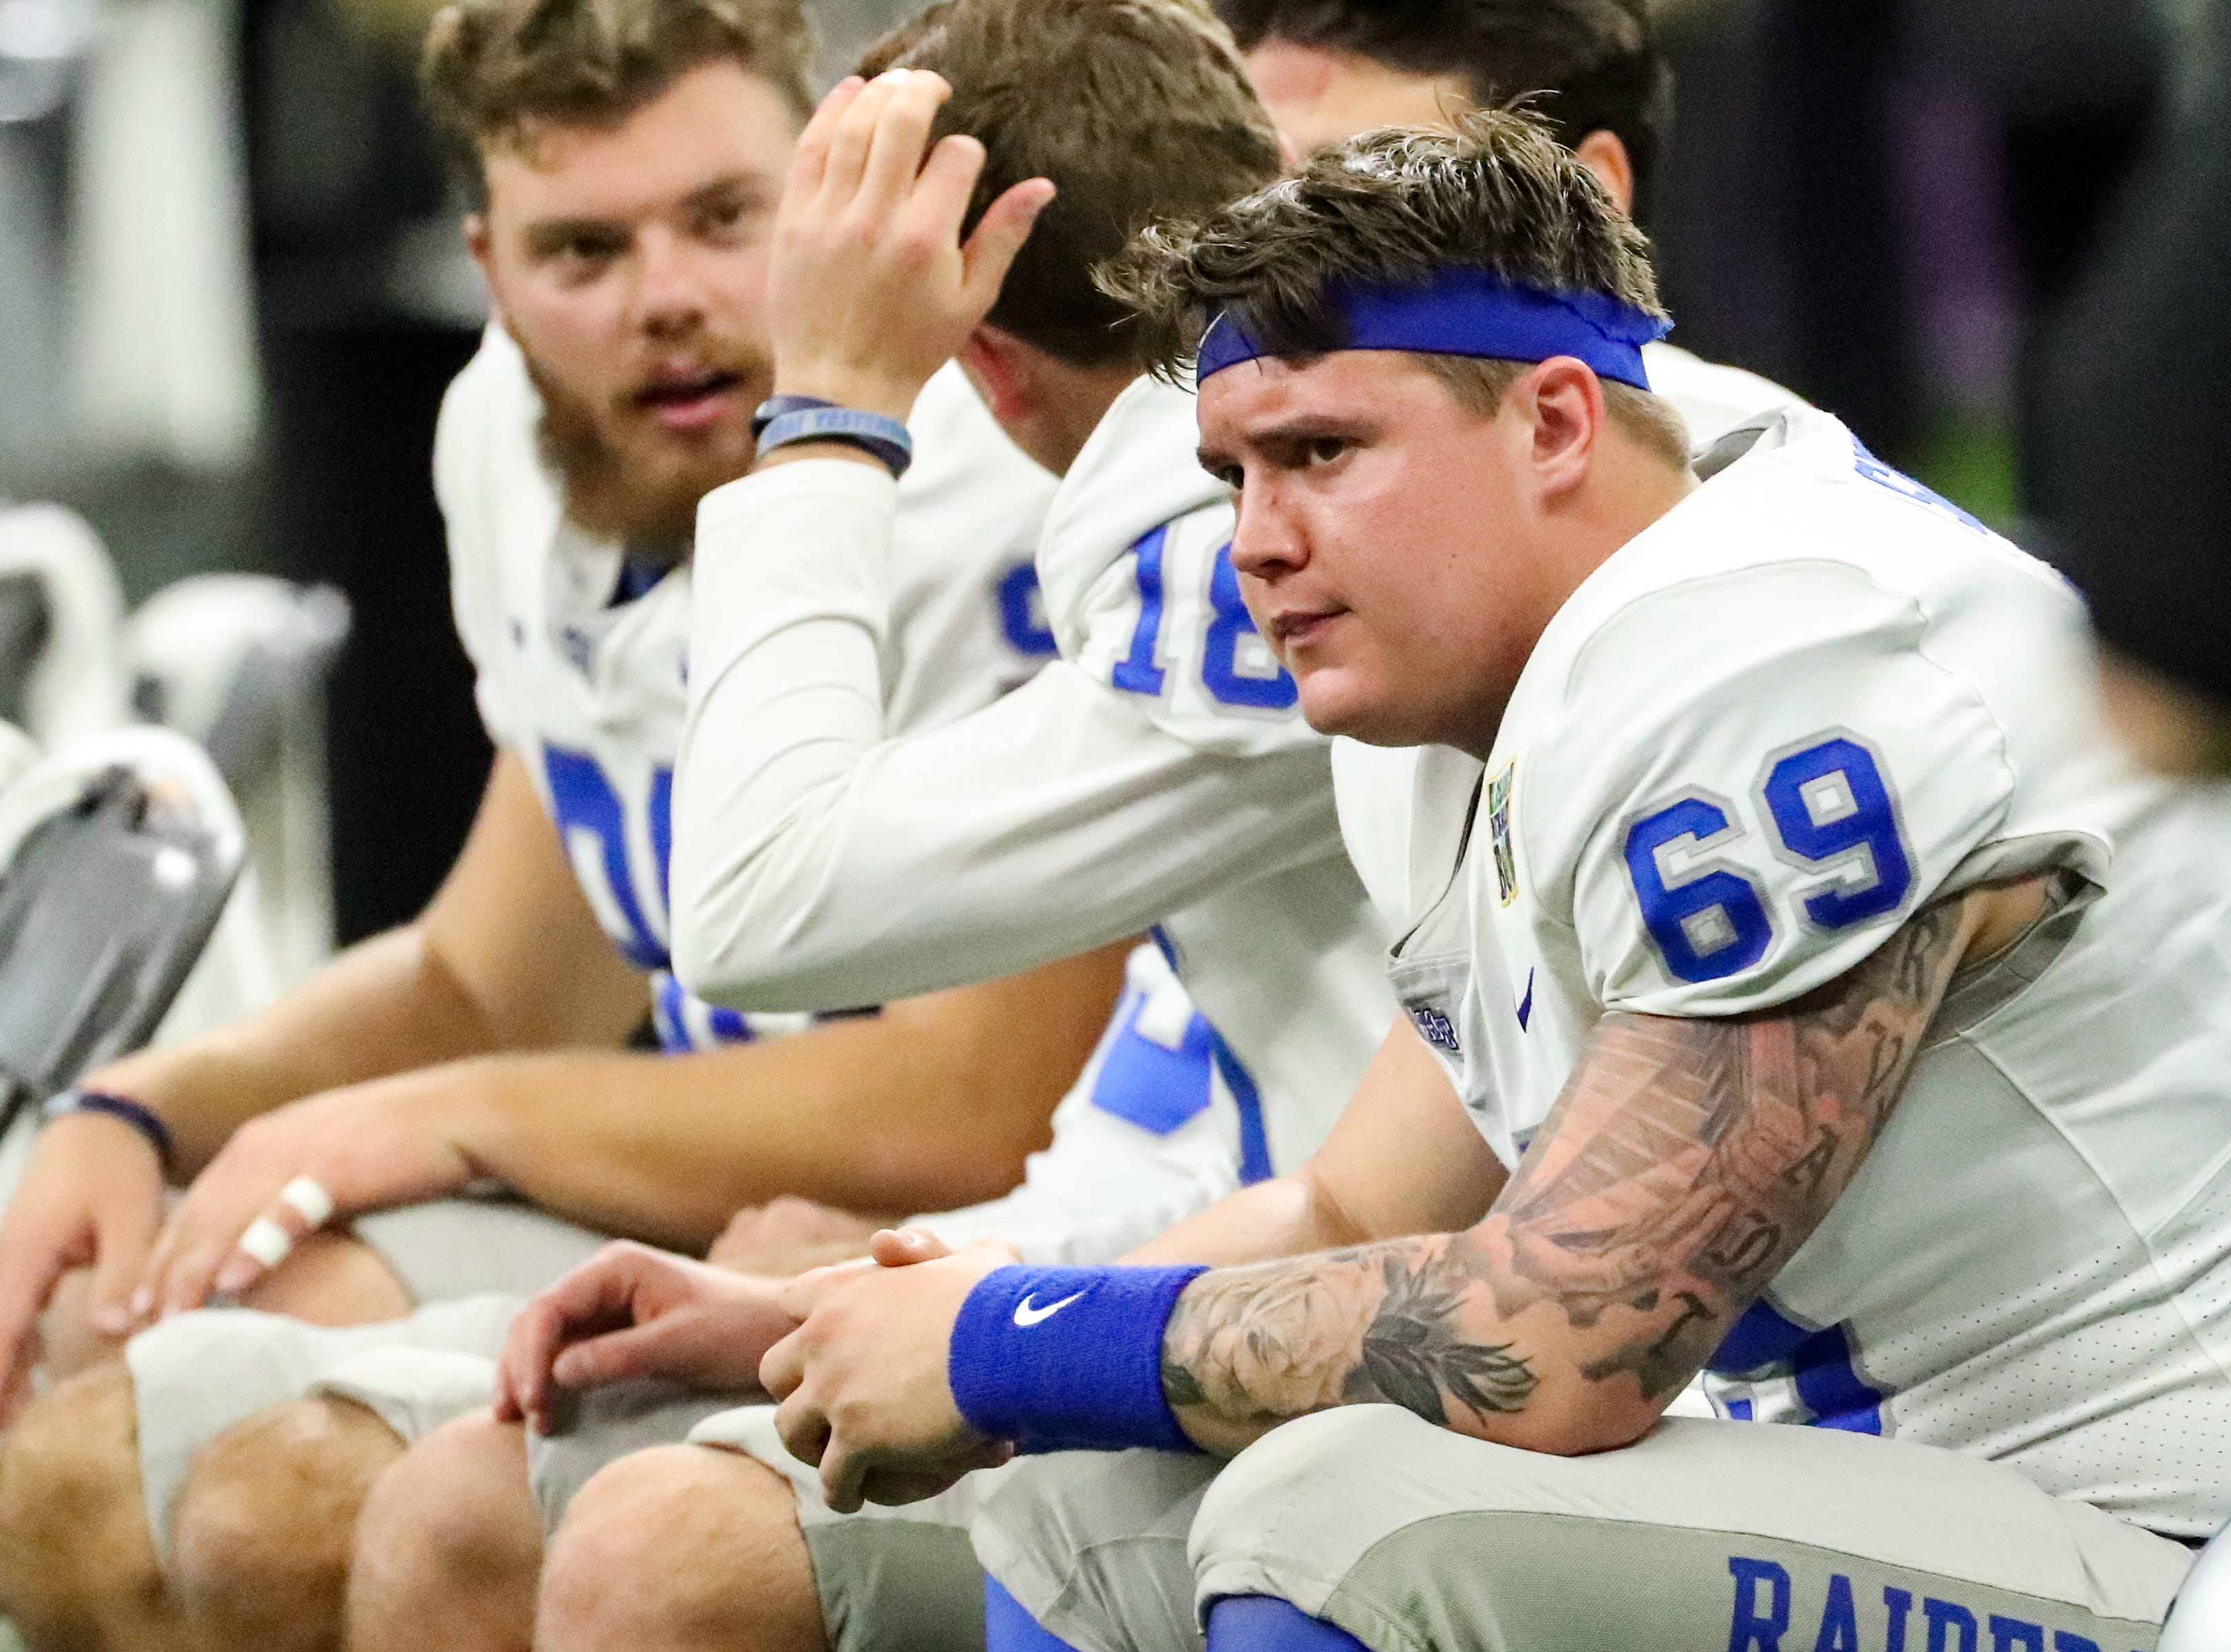 Middle Tennessee Blue Raiders long snapper Daniel Sargent (69) sits on the sidelines during the first half of the game as they are losing to Appalachian State Mountaineers at the Mercedes-Benz Superdome Saturday, Dec. 15, 2018, in New Orleans, La.